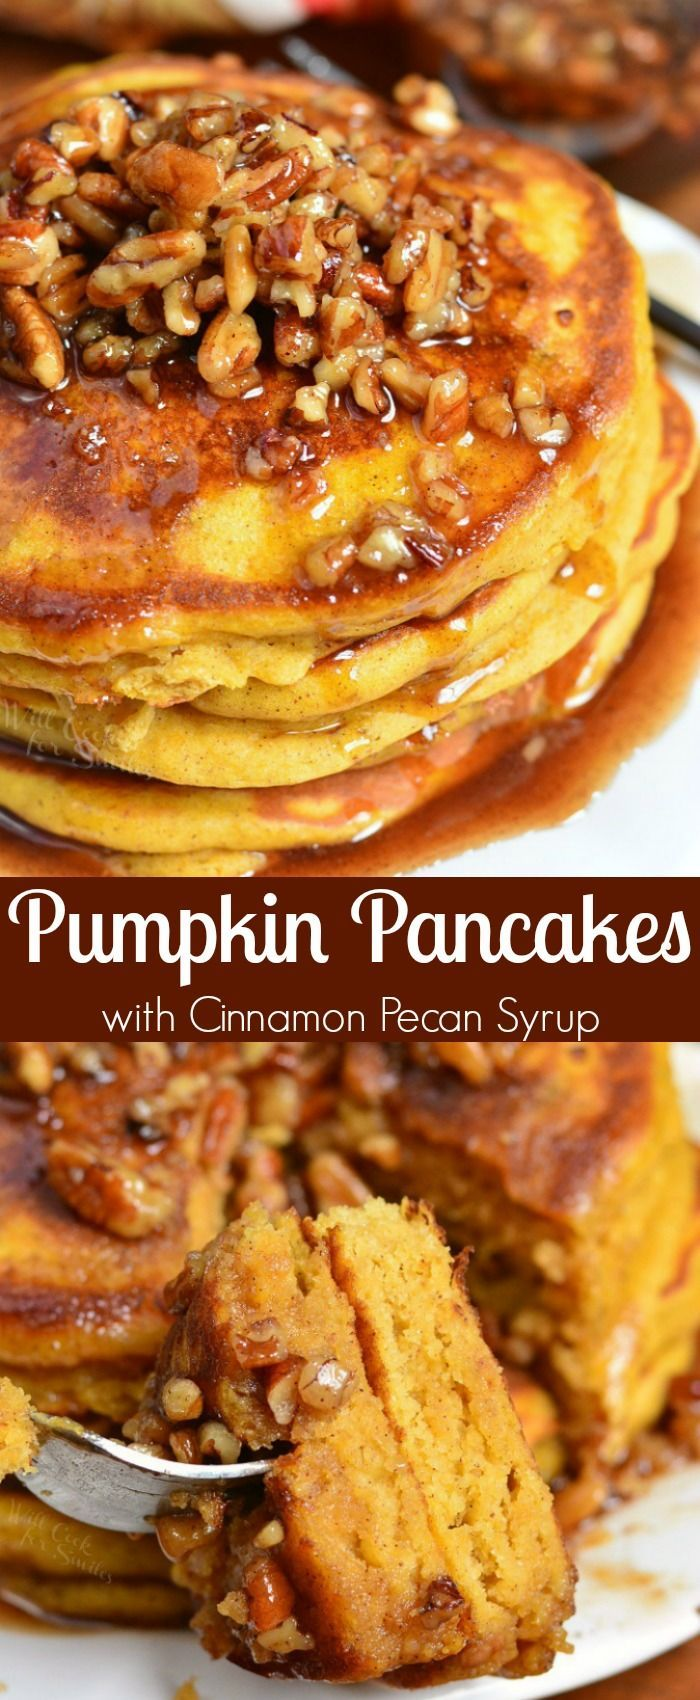 Pumpkin Pancakes with Cinnamon Pecan Syrup. These soft, fluffy buttermilk pancakes are made with pumpkin puree and spices. Over the top of these easy pumpkin pancakes is a simple Cinnamon Pecan Syrup. #pancakes #breakfast #pumpkin #pumpkinpancakes #syrup #fallrecipes #fallbreakfast #pumpkindesserts